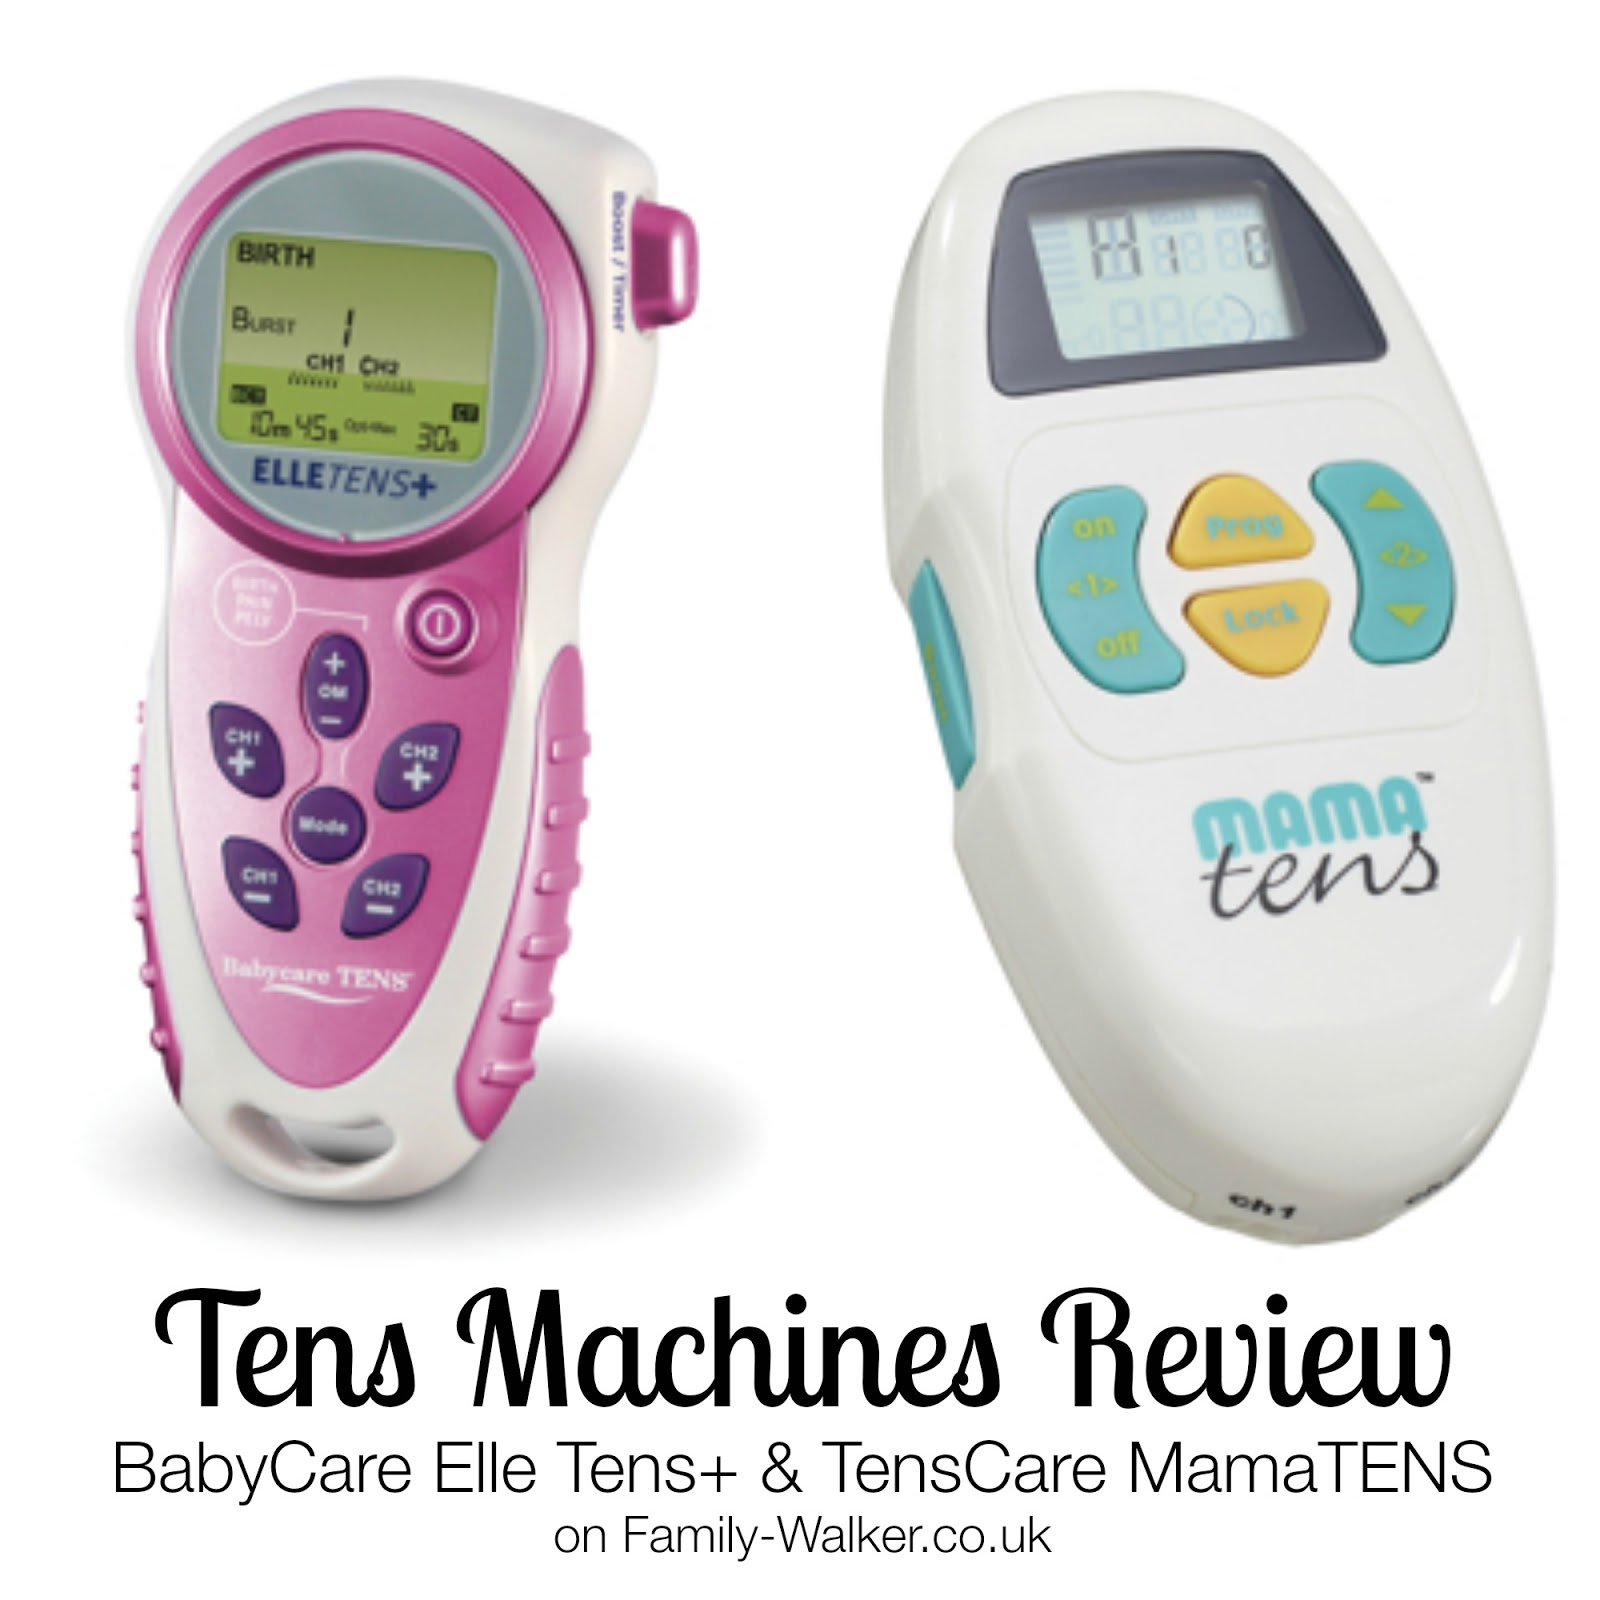 Tens Machines Review BabyCare Elle Tens+ & TensCare MamaTENS on Family-Walker.co.uk